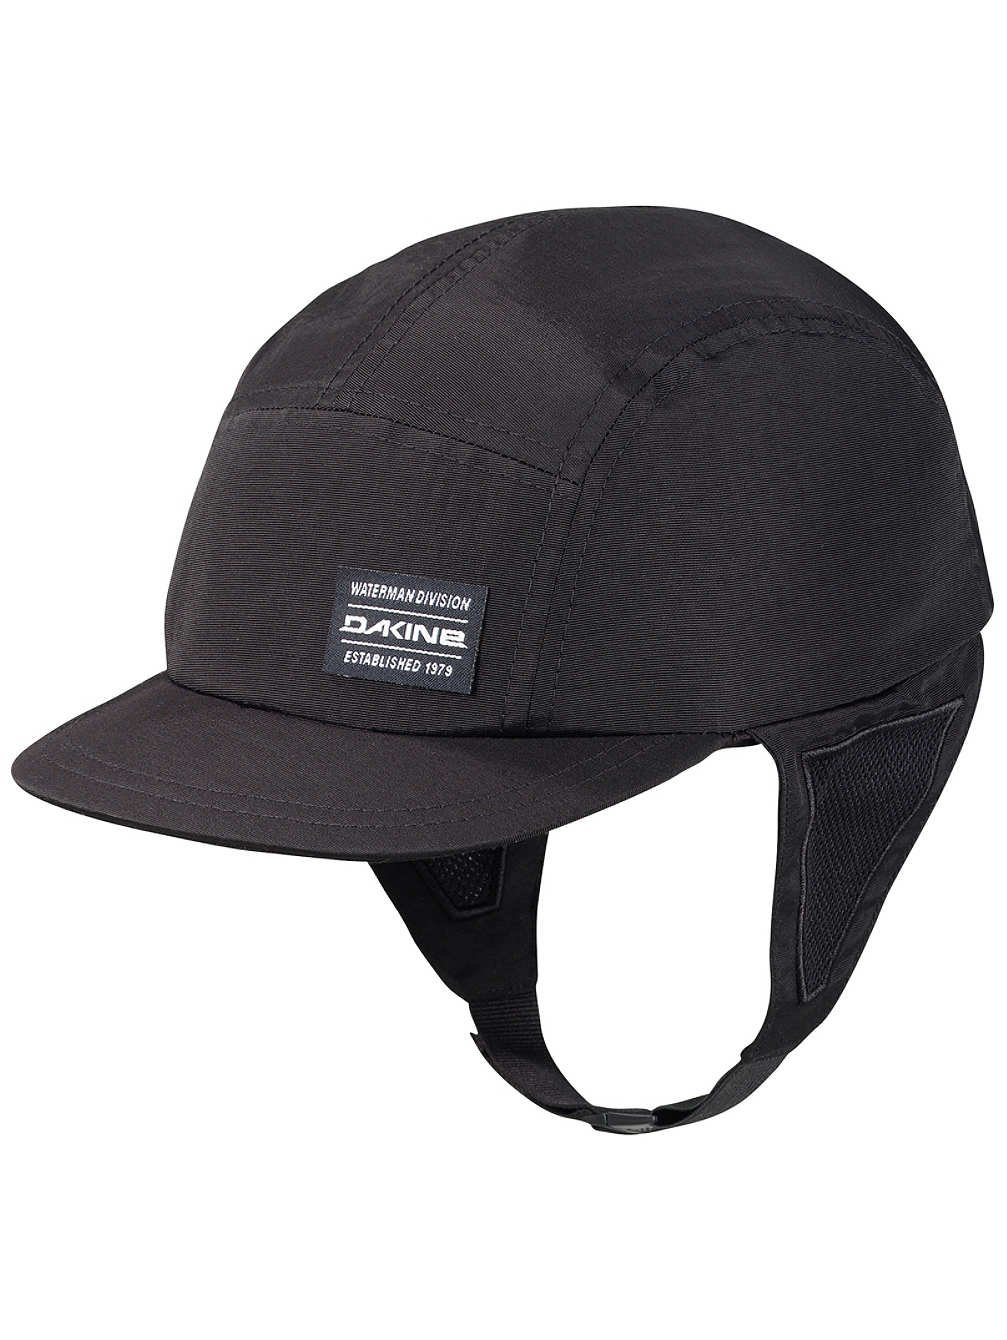 Dakine 2018 Surf Cap Black 10001857